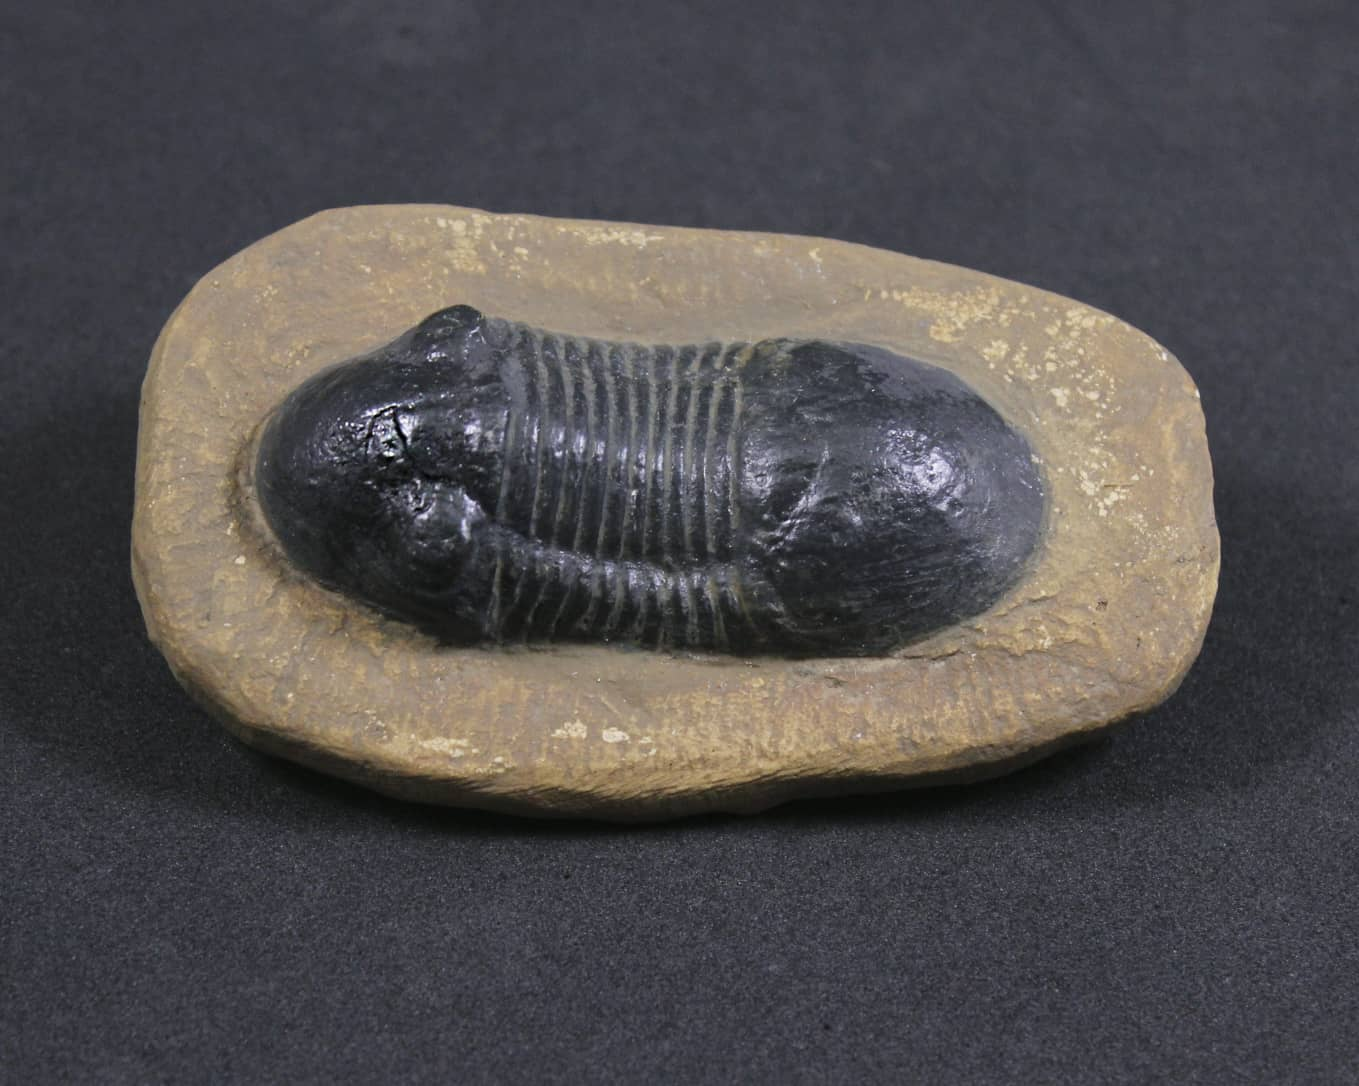 Trilobita: Paralejurus sp